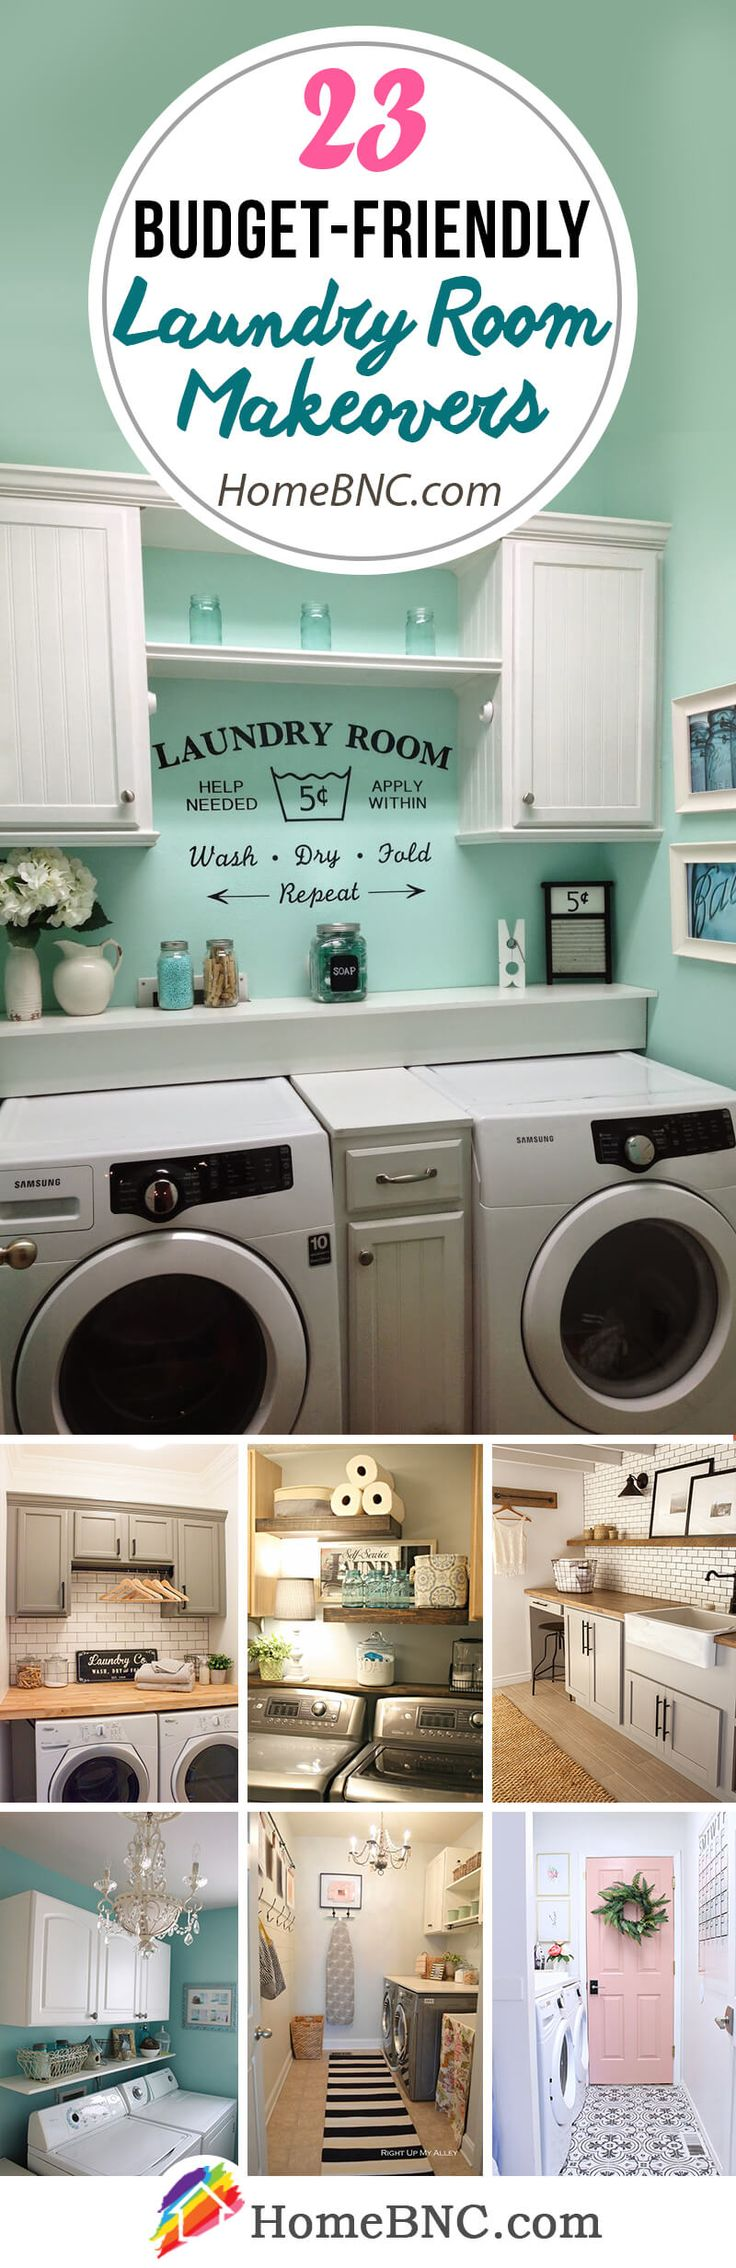 Easy Laundry Room Makeovers Best 20 Condo Living Ideas On Pinterest Condo Decorating